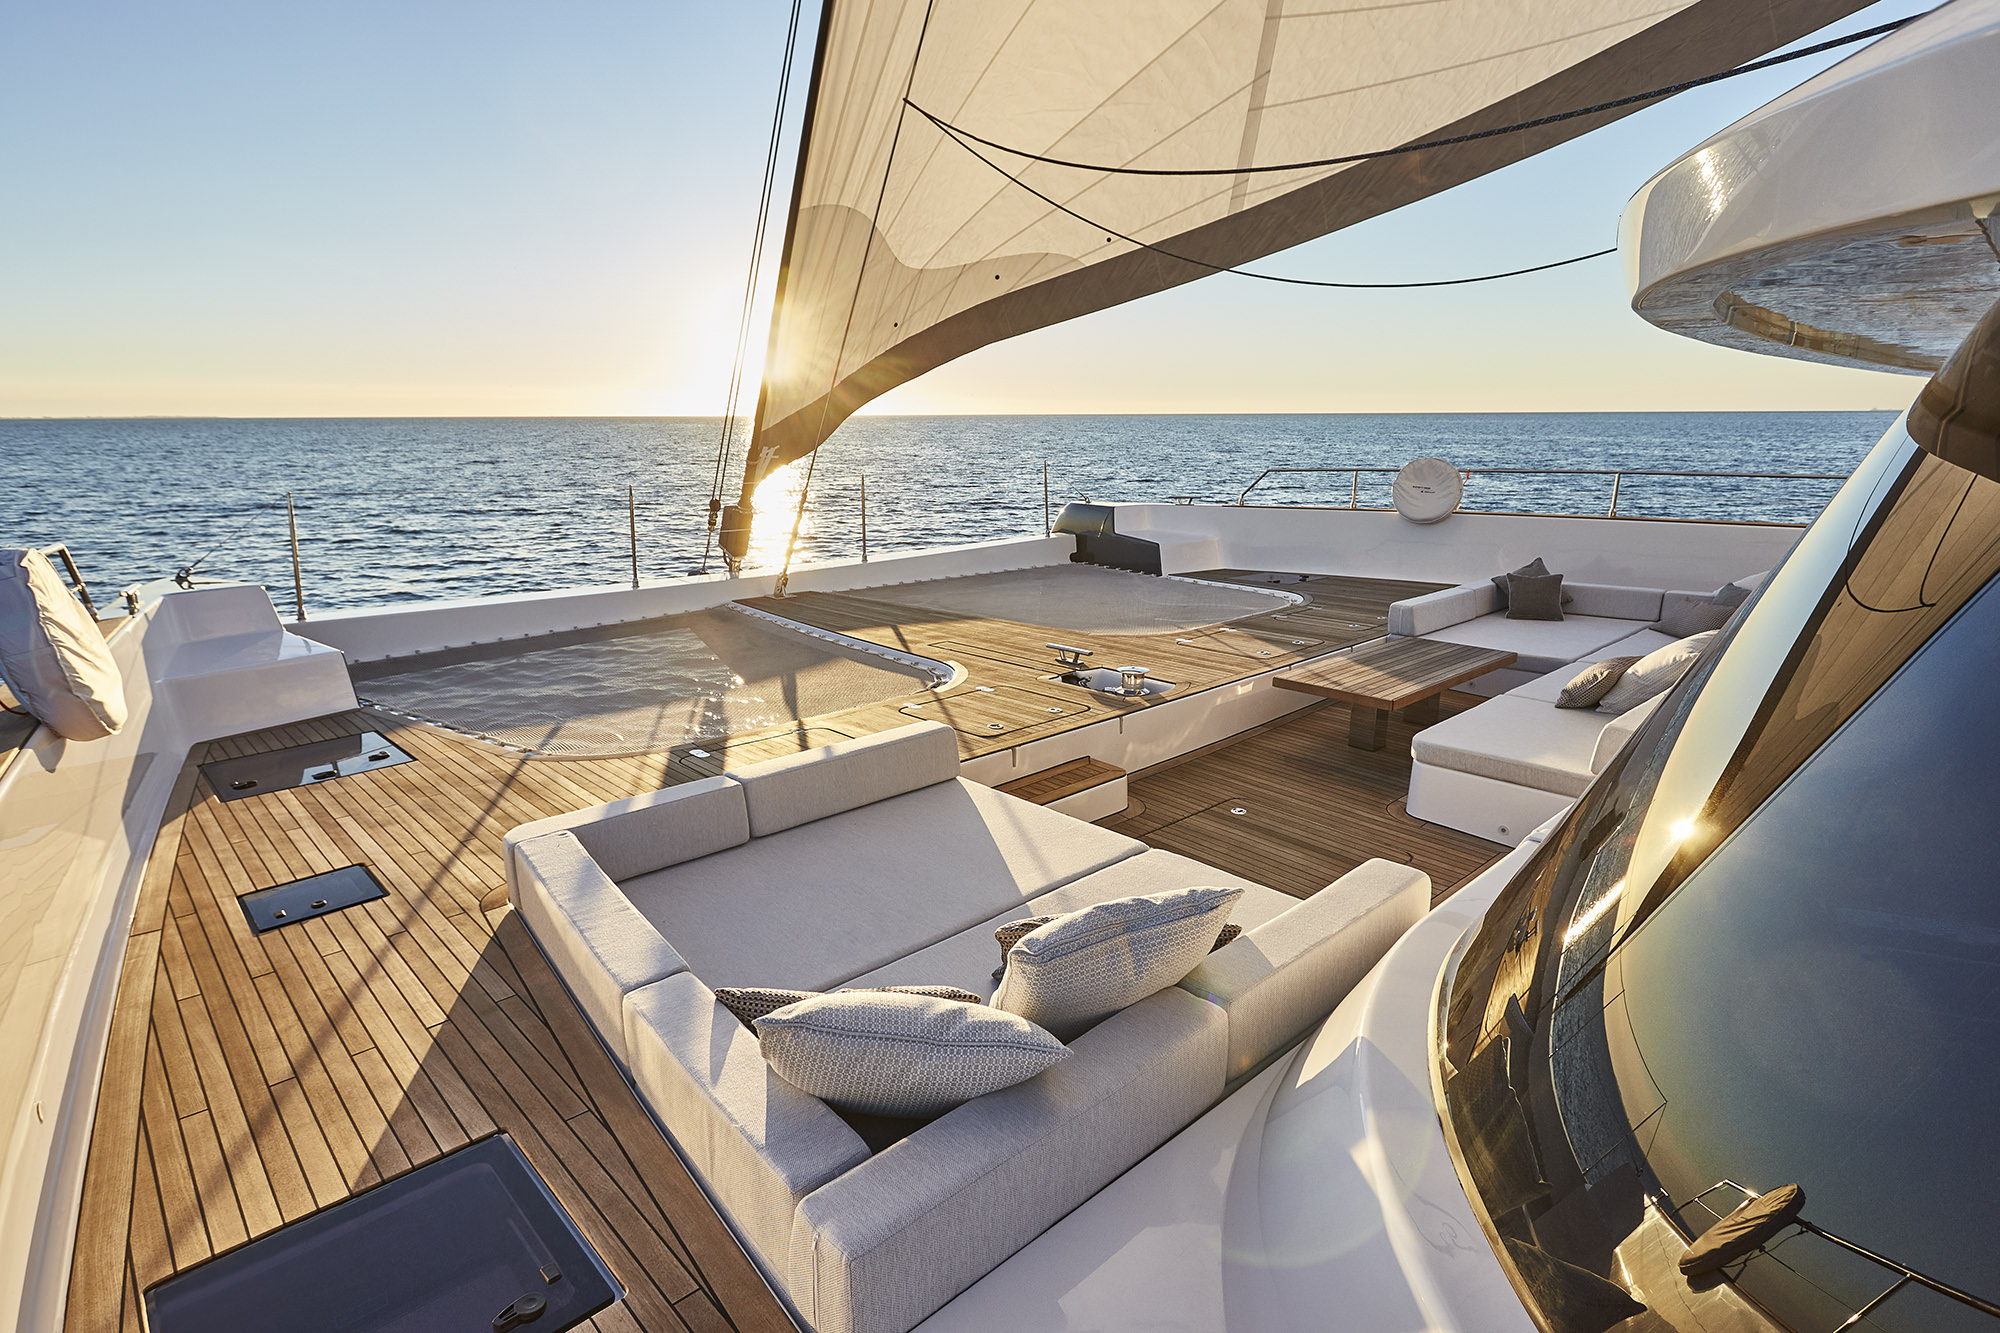 Foredecks With Seating And Relaxation Areas